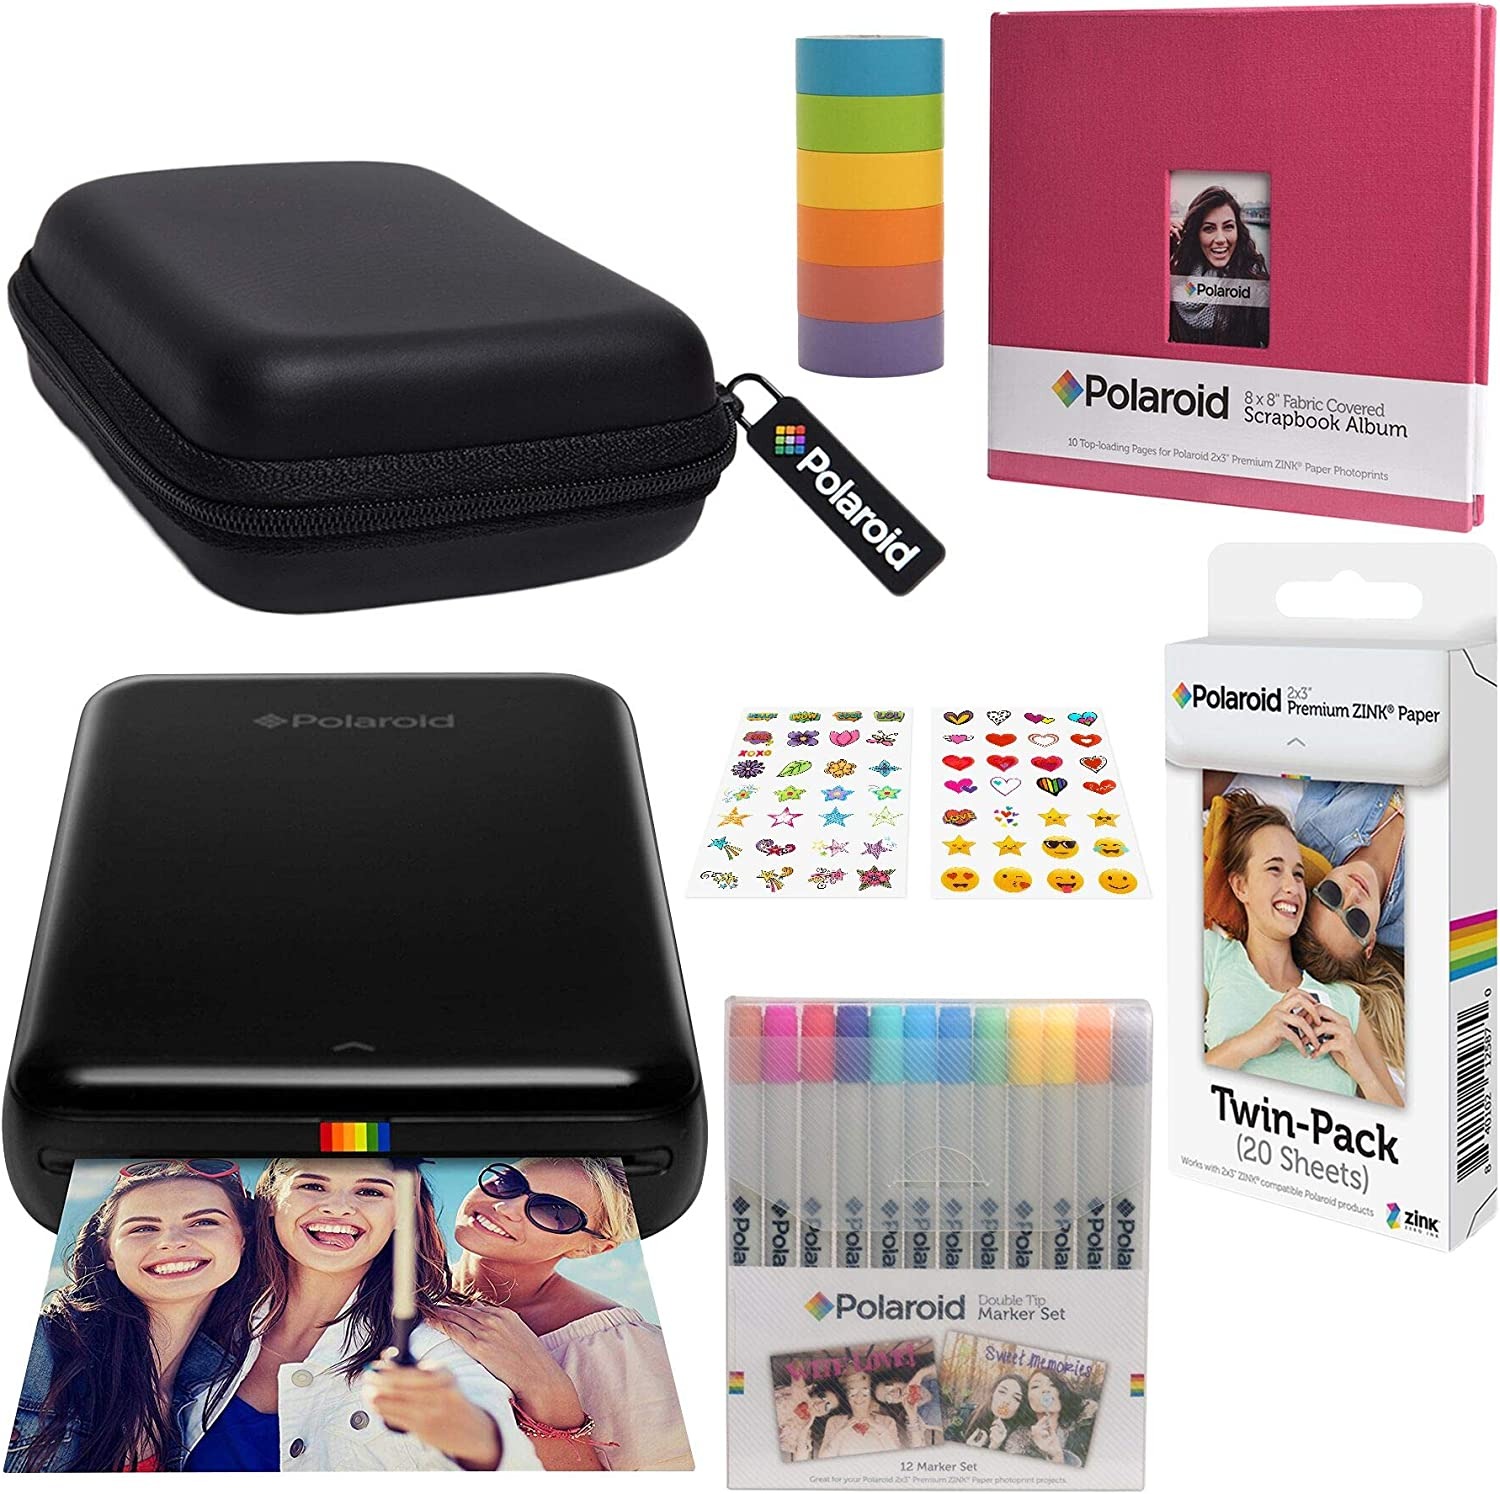 Amazon.com: Polaroid Zip - Kit de álbumes de recortes con ...